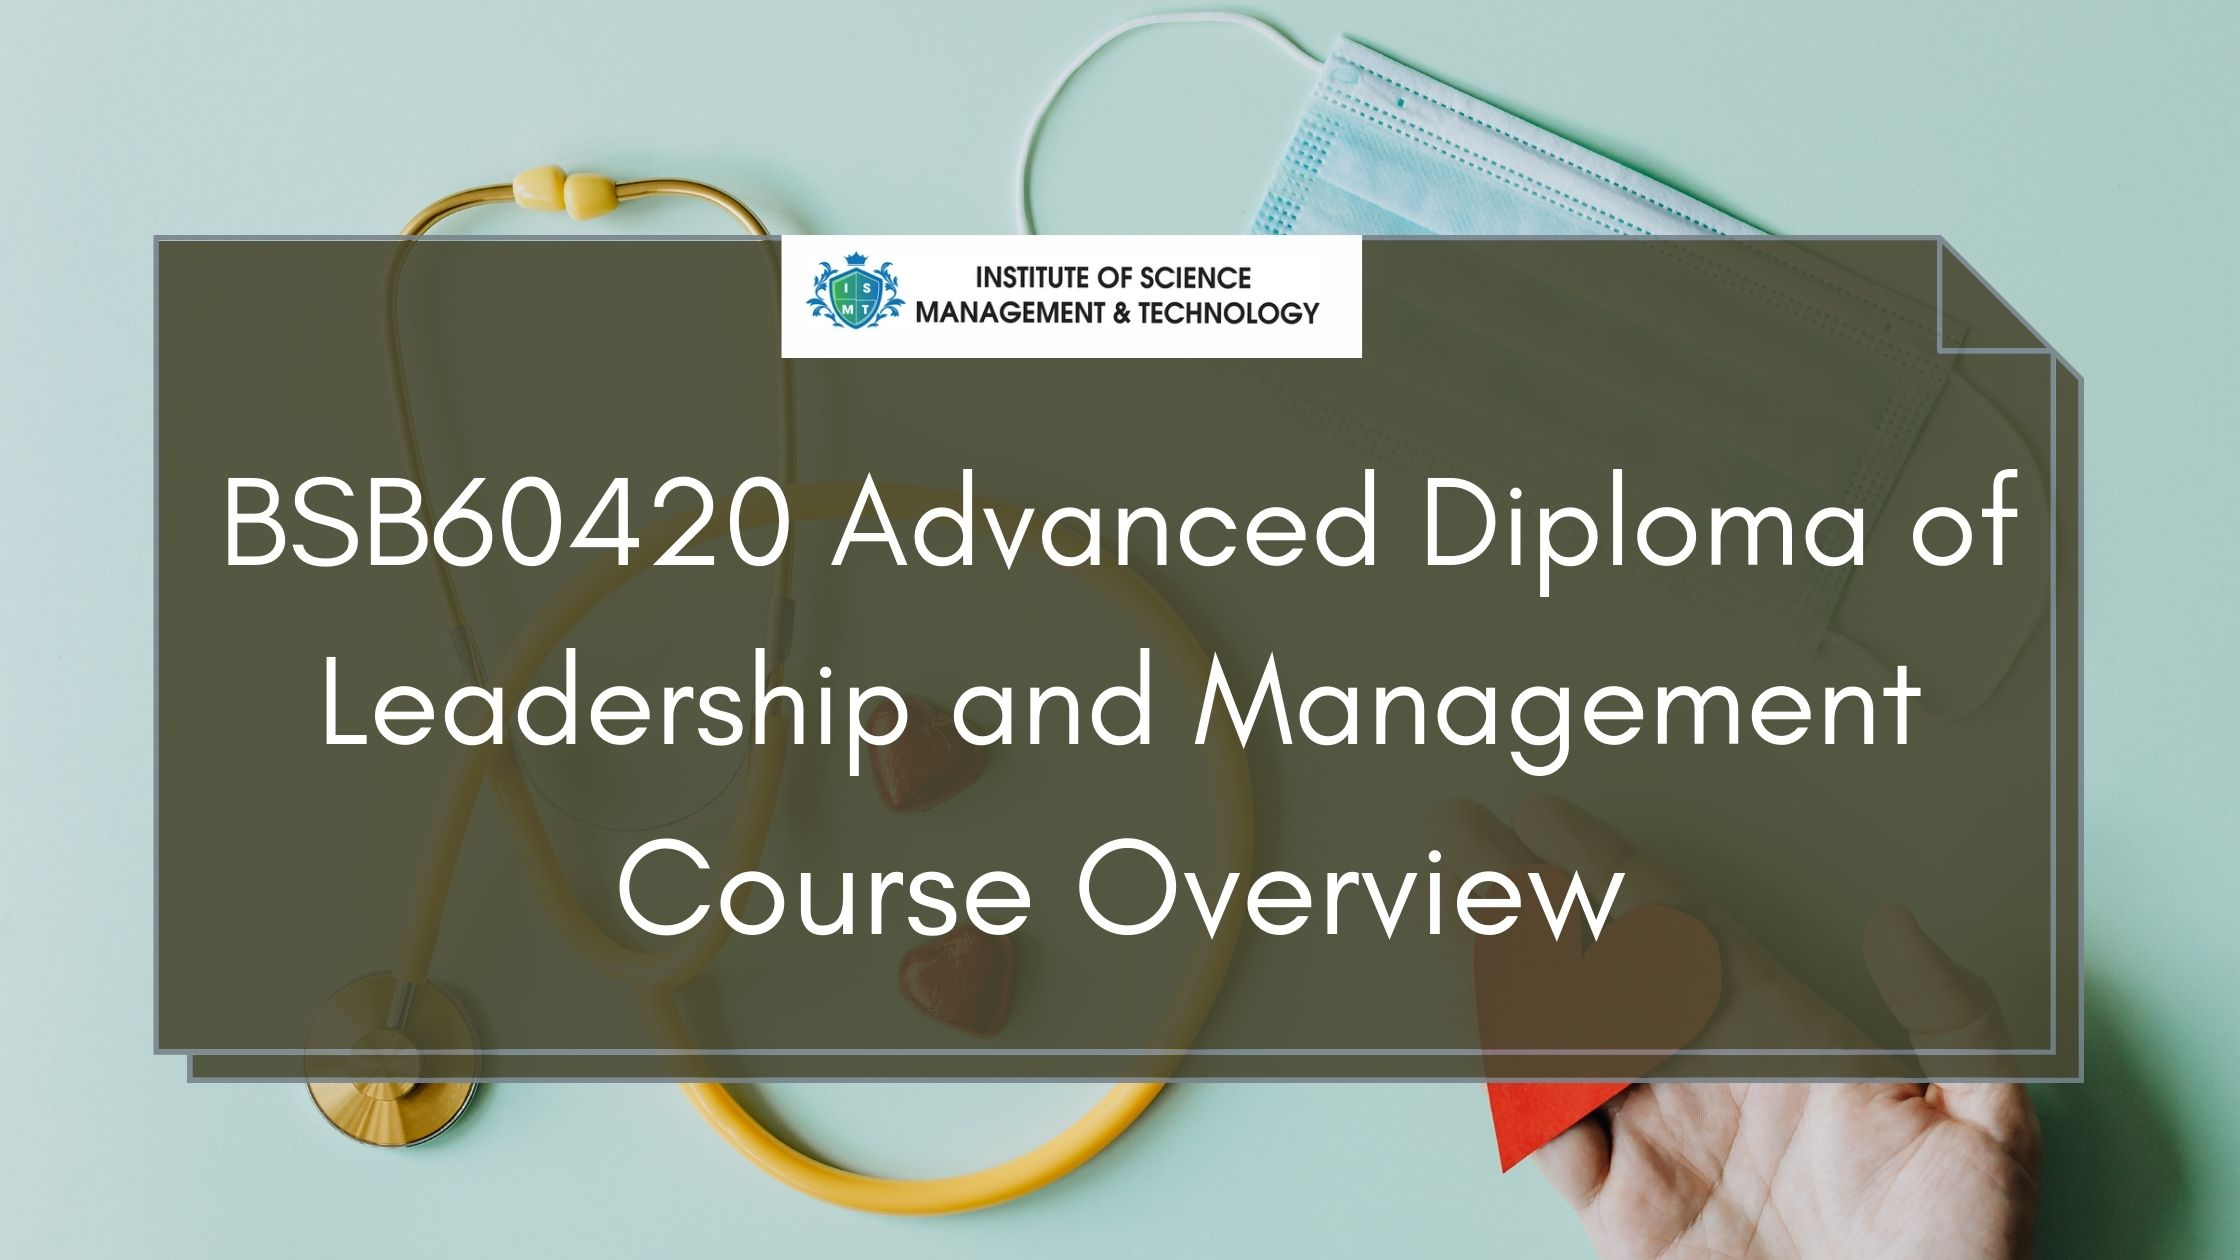 BSB60420 Advanced Diploma of Leadership and Management Course Overview